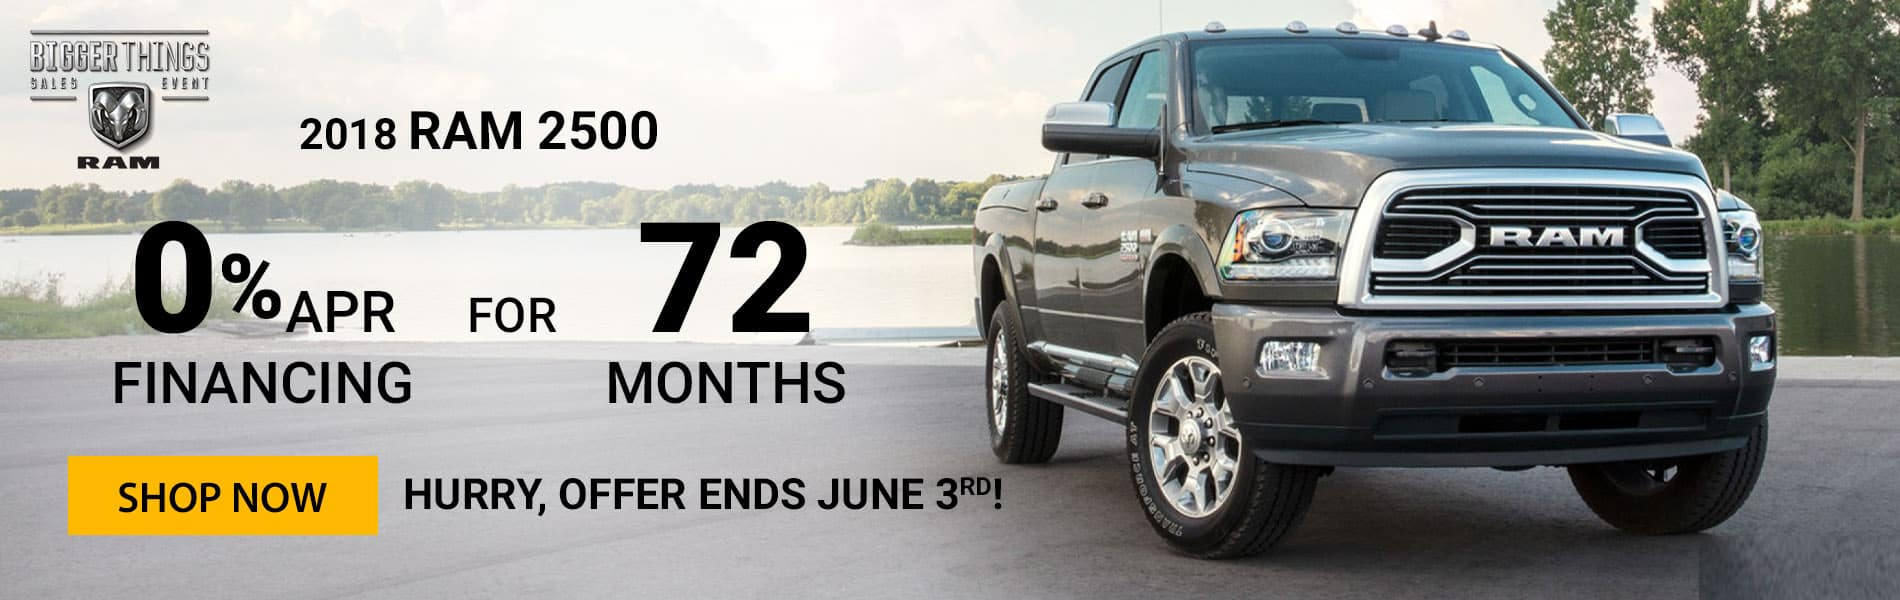 0% APR for 72 months on 2018 RAM 2500s.